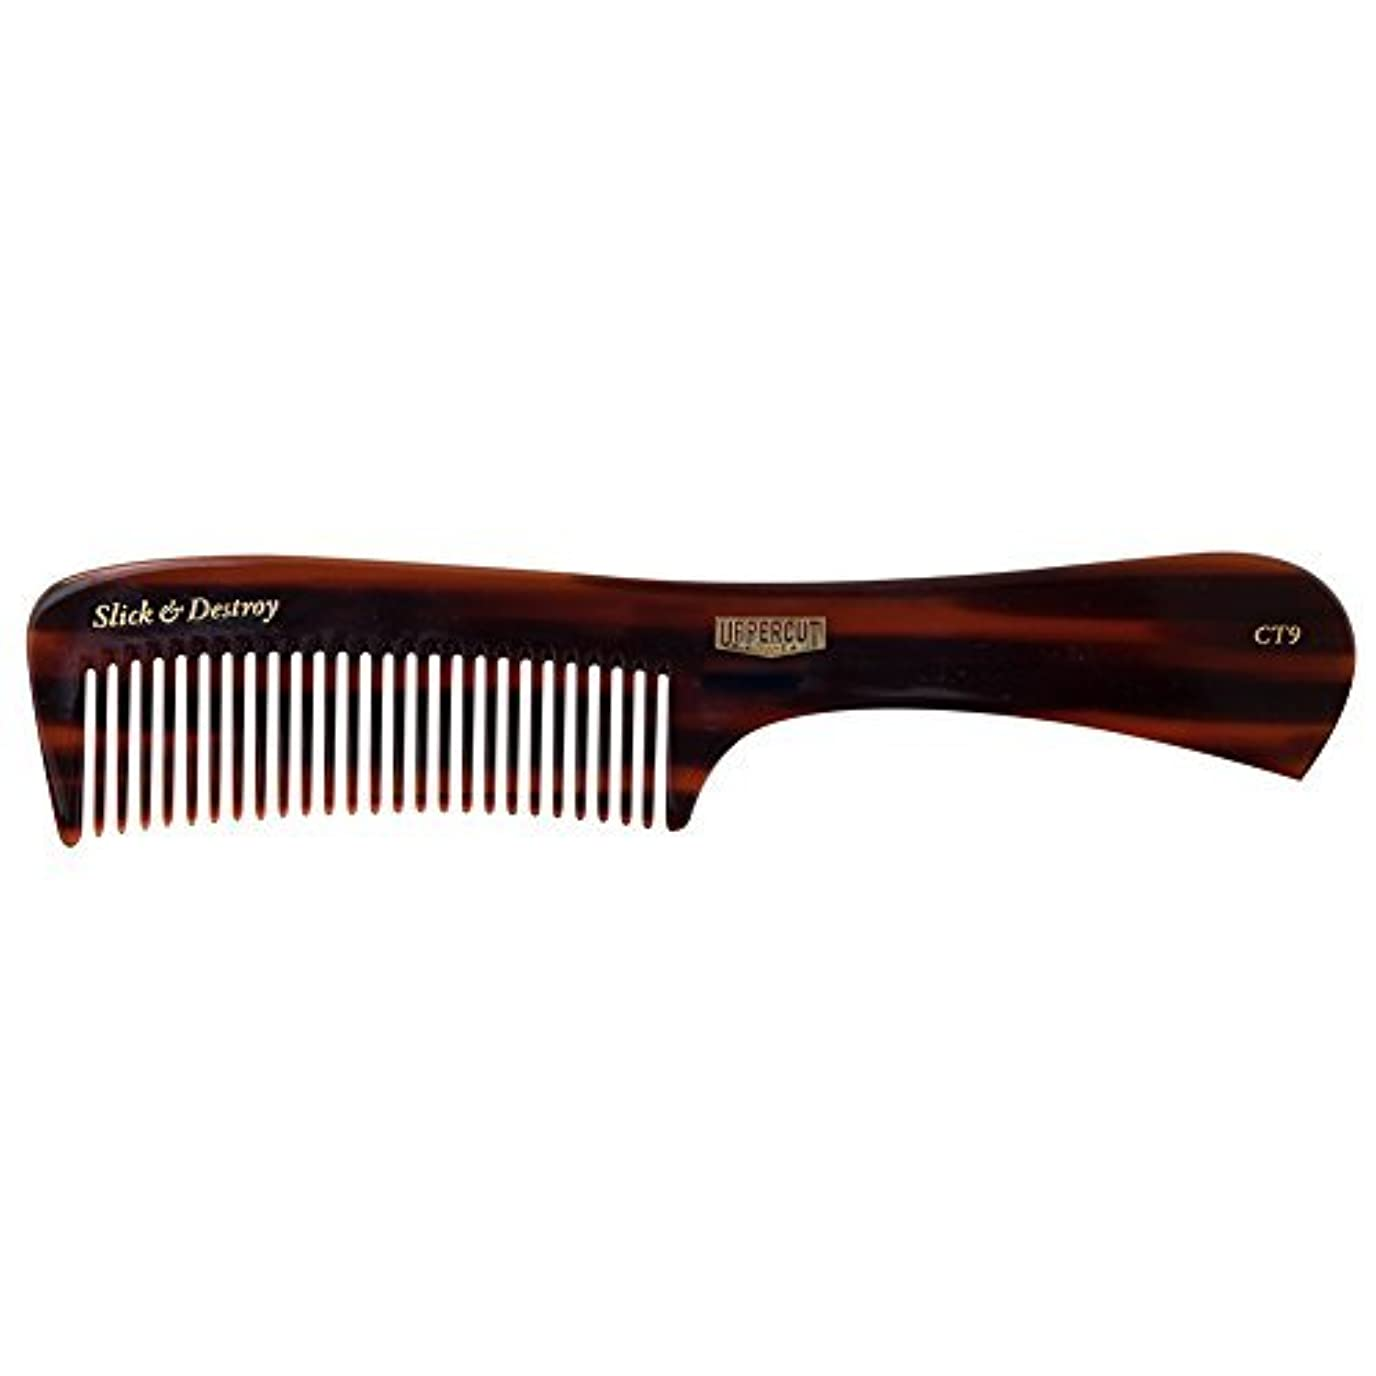 展開するじゃない退屈Uppercut Deluxe CT9 Tortoise Styling Comb - Minimal Static, Flexible - Slick & Destroy [並行輸入品]